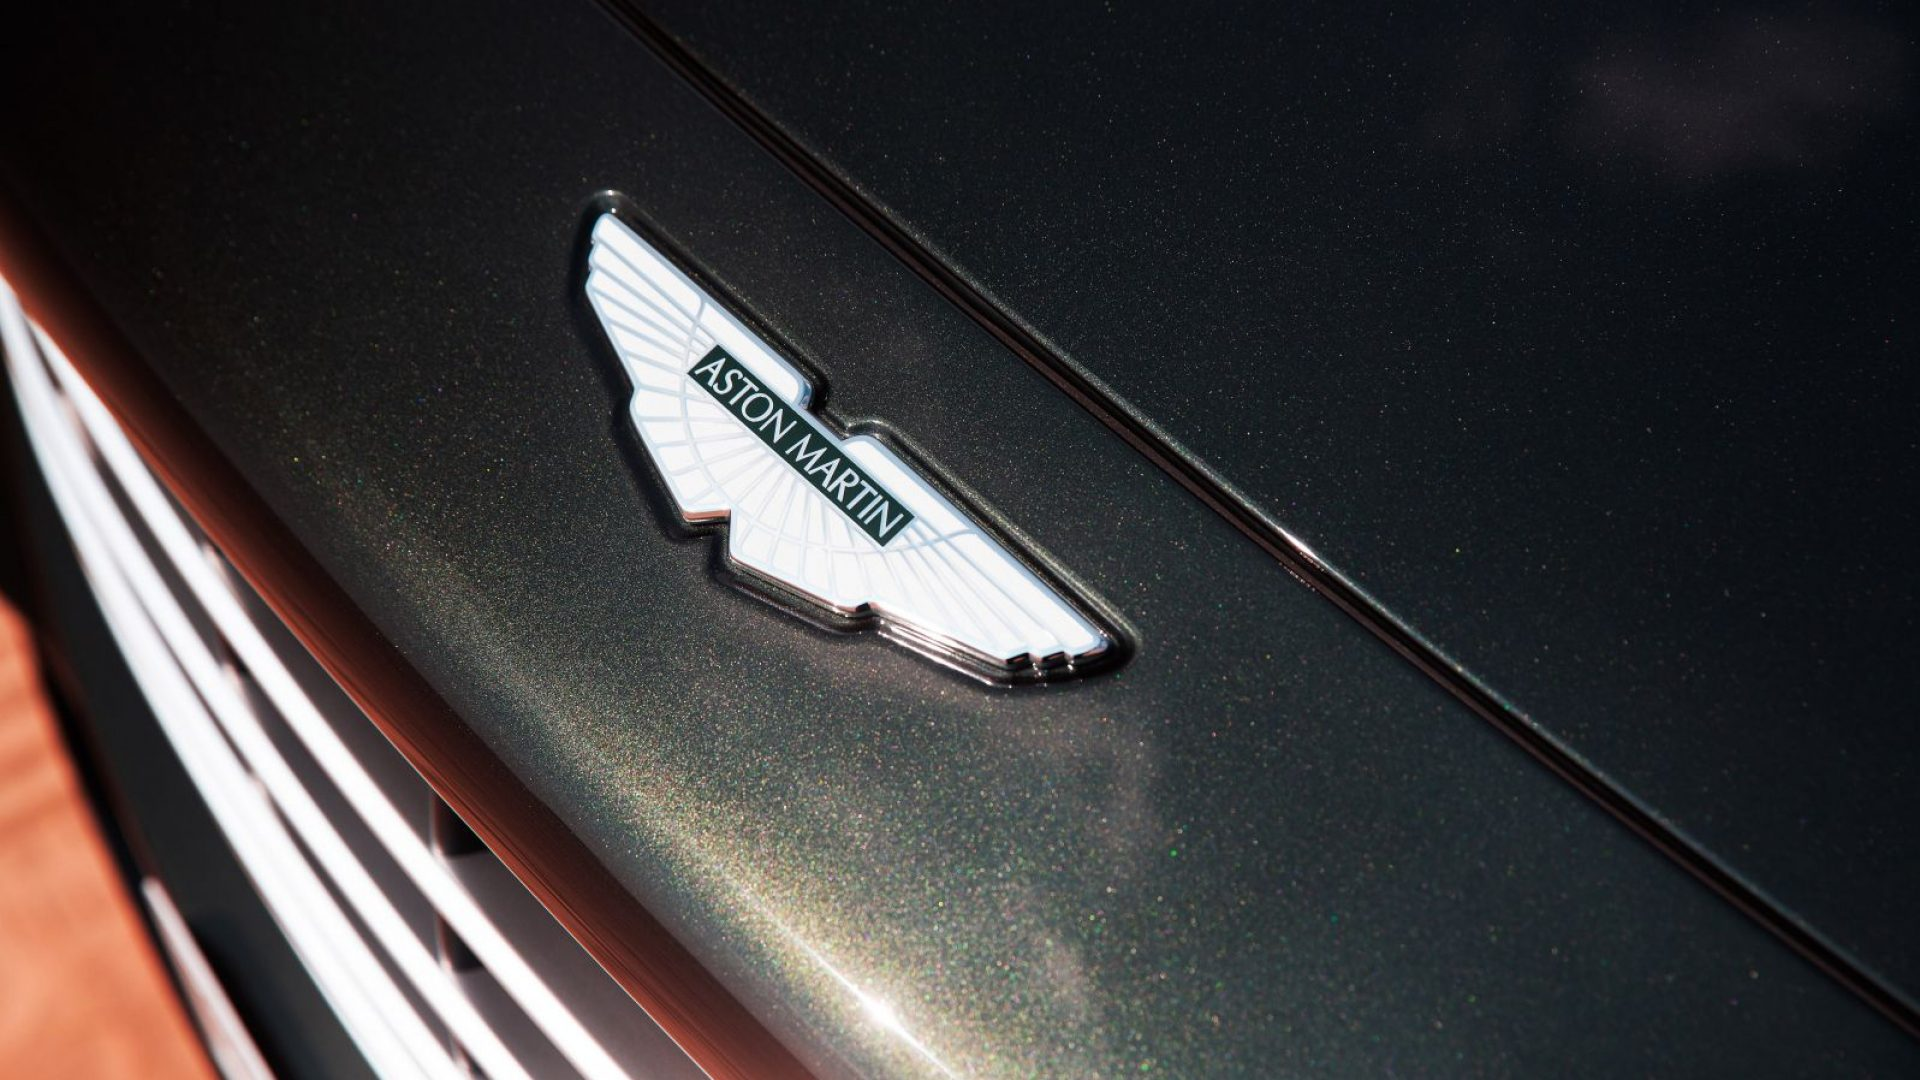 aston-martin-dbx-in-the-middle-east-19-jpg.